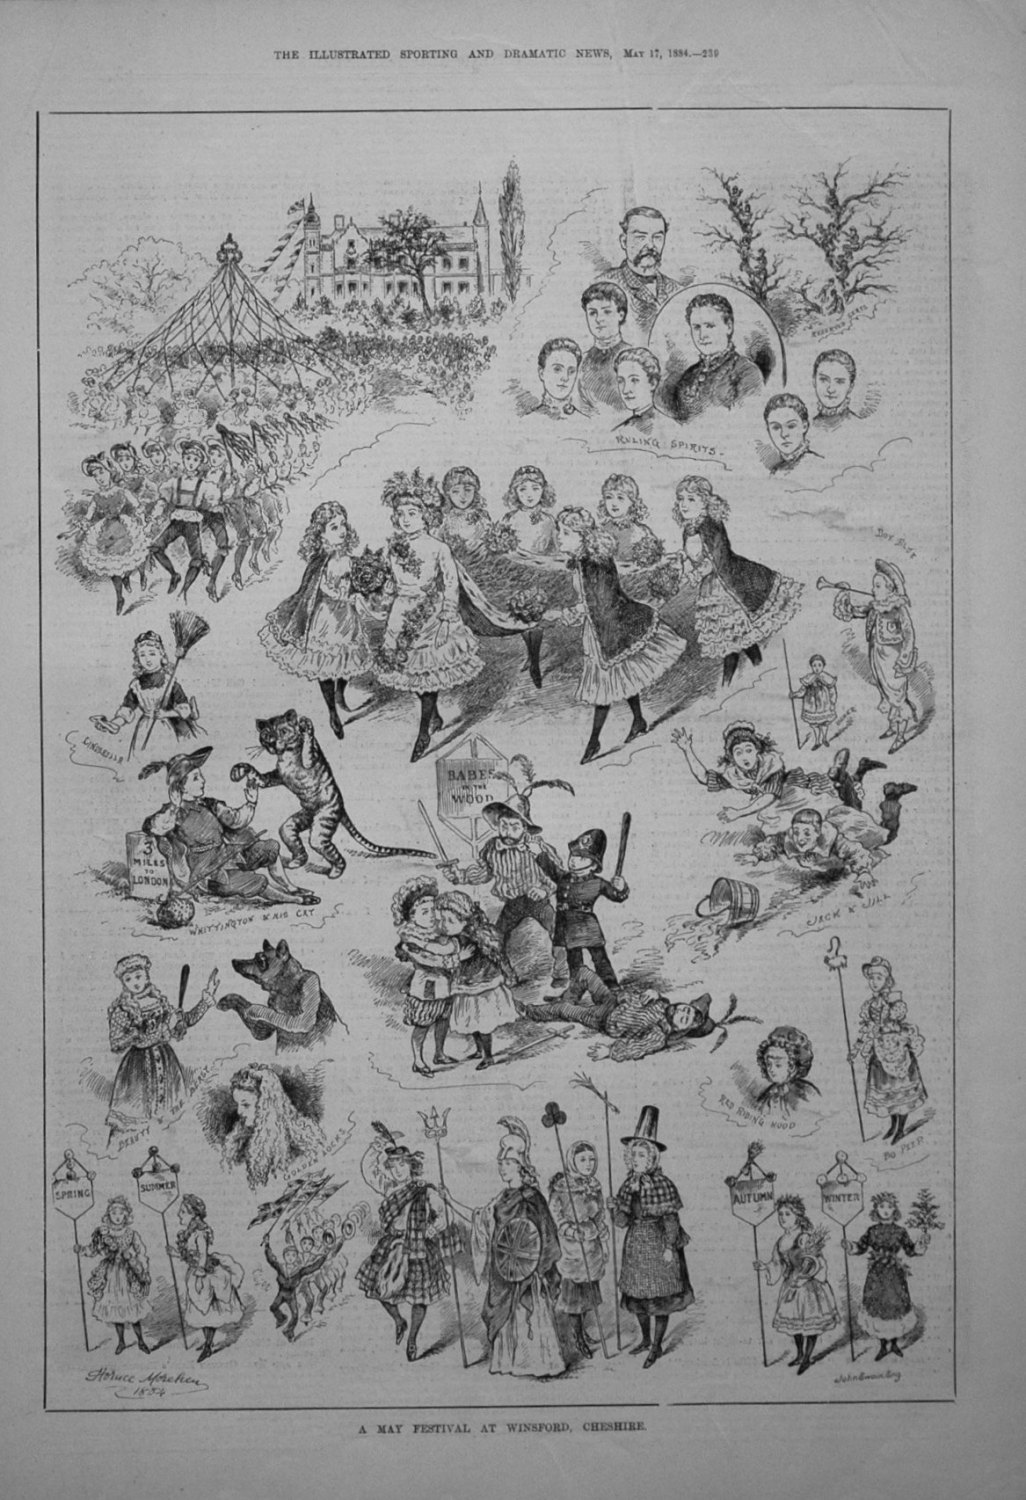 A May Festival at Winford, Cheshire. 1884